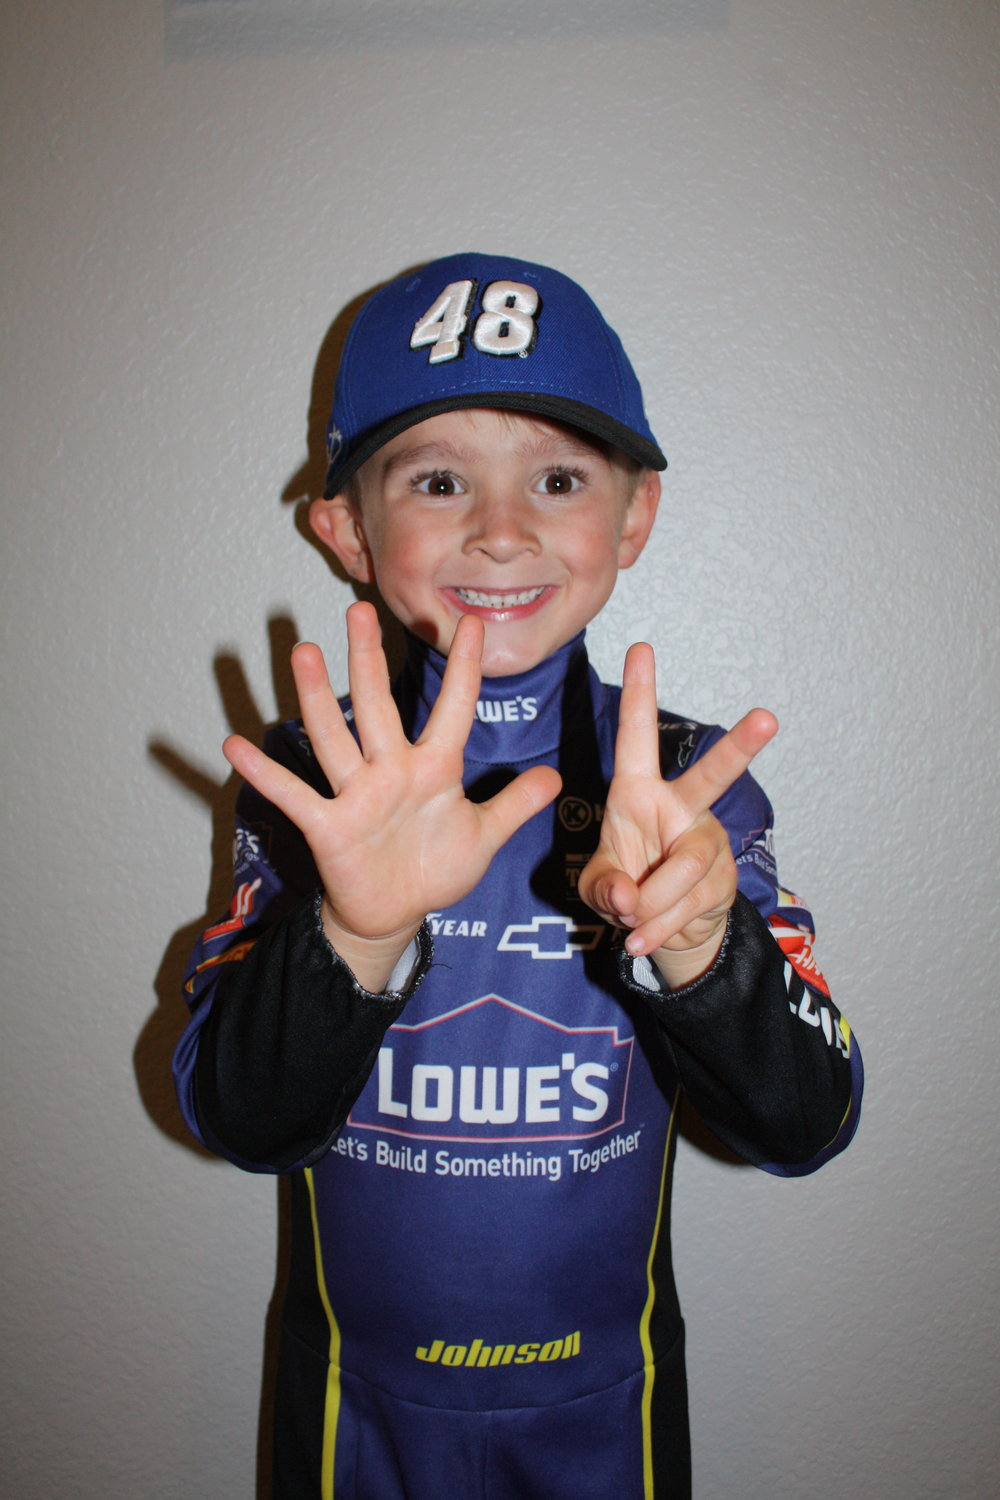 Our little Asher as Jimmie for Halloween, wishing for his 7th championship